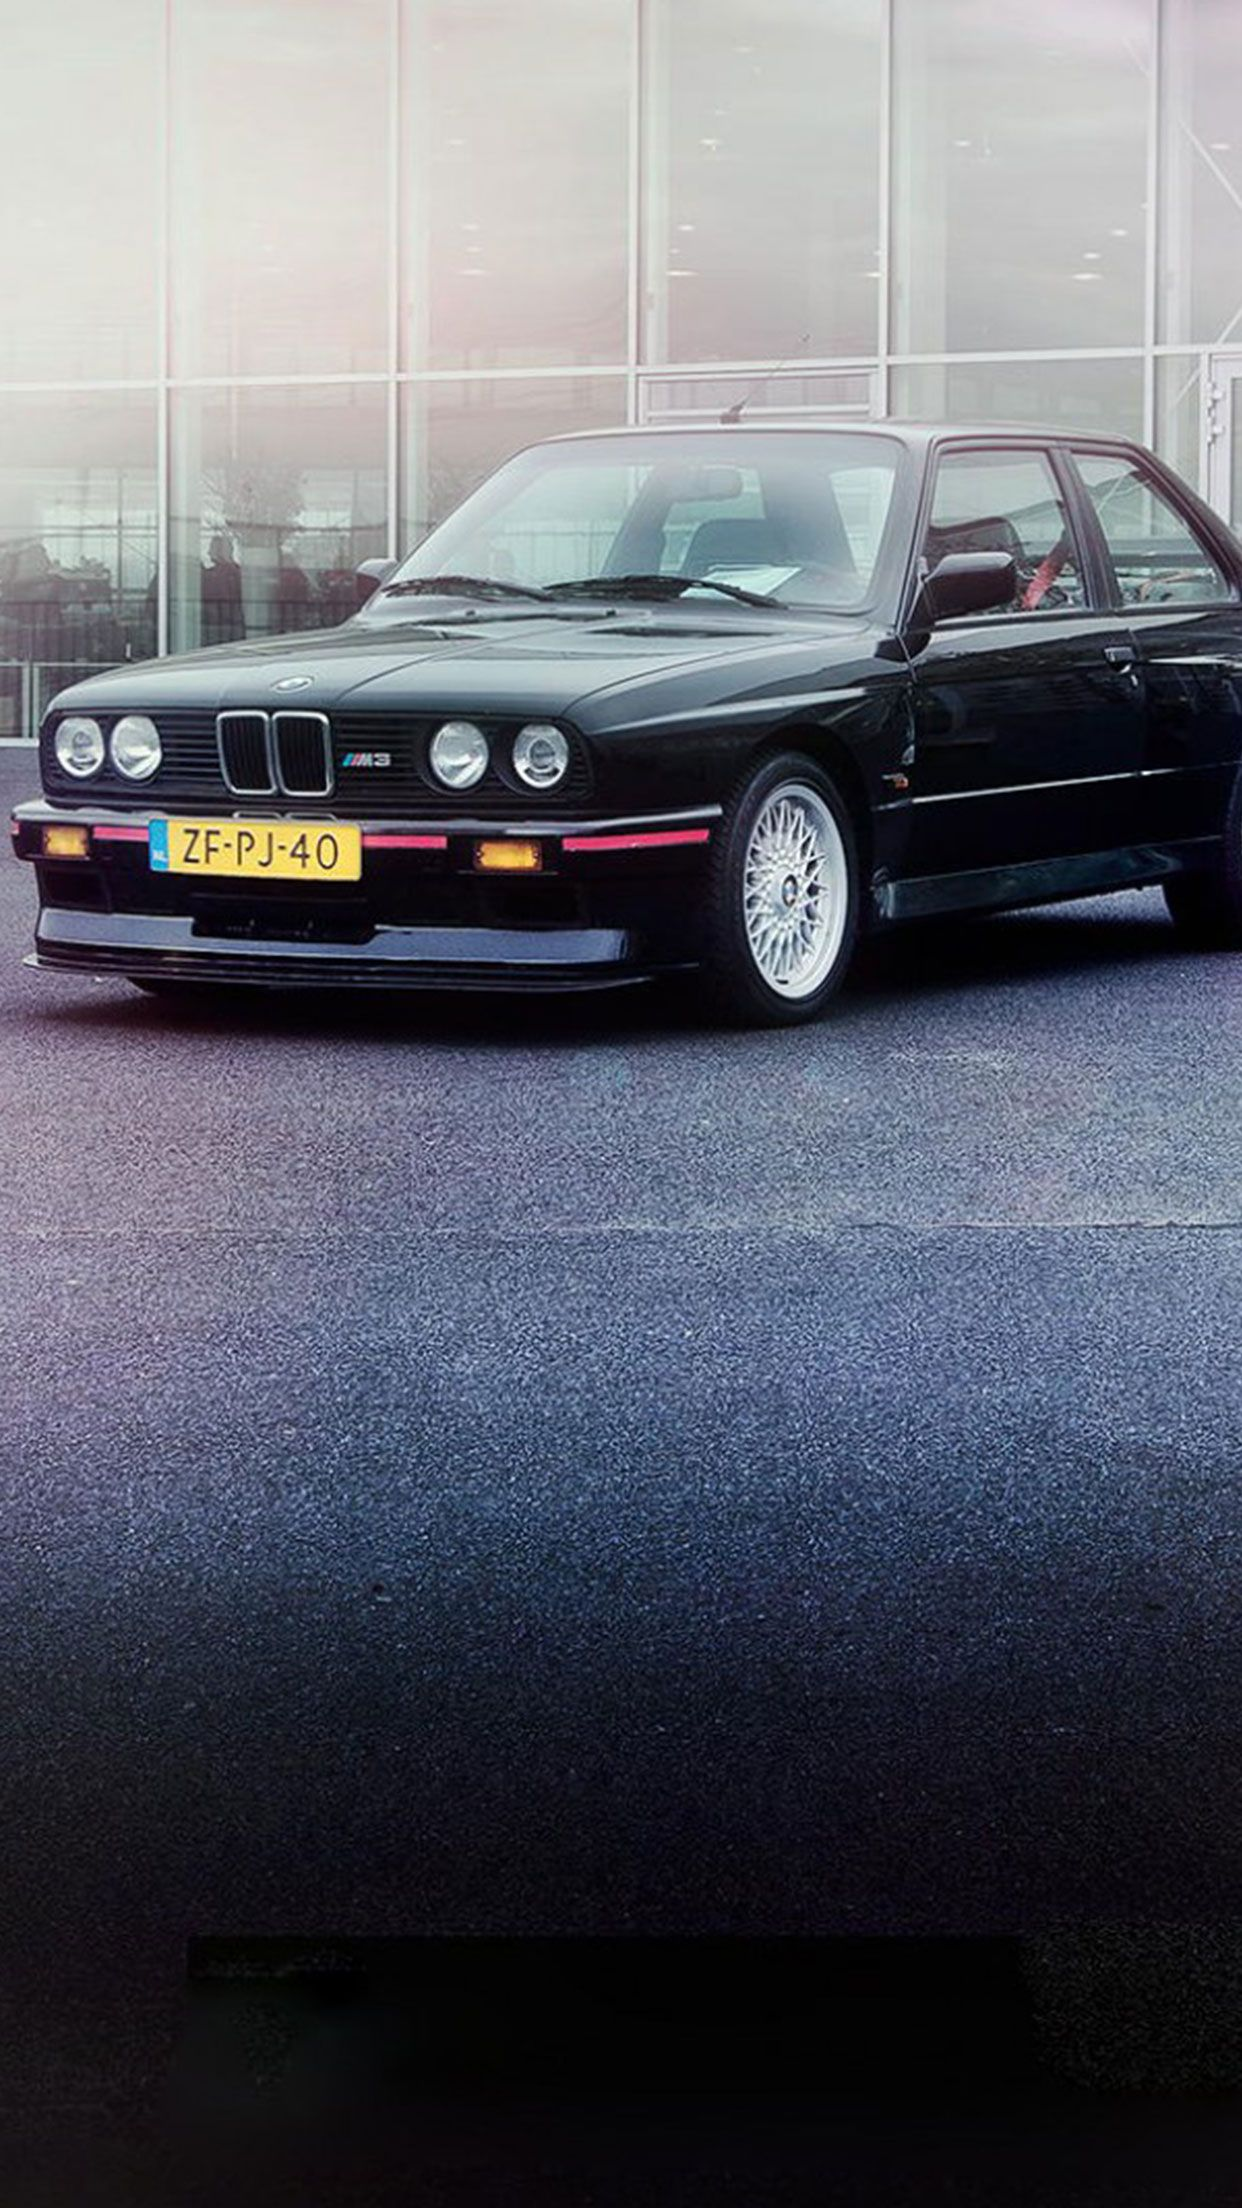 black bmw car wallpaper iphone android wallpaper black bmw more on